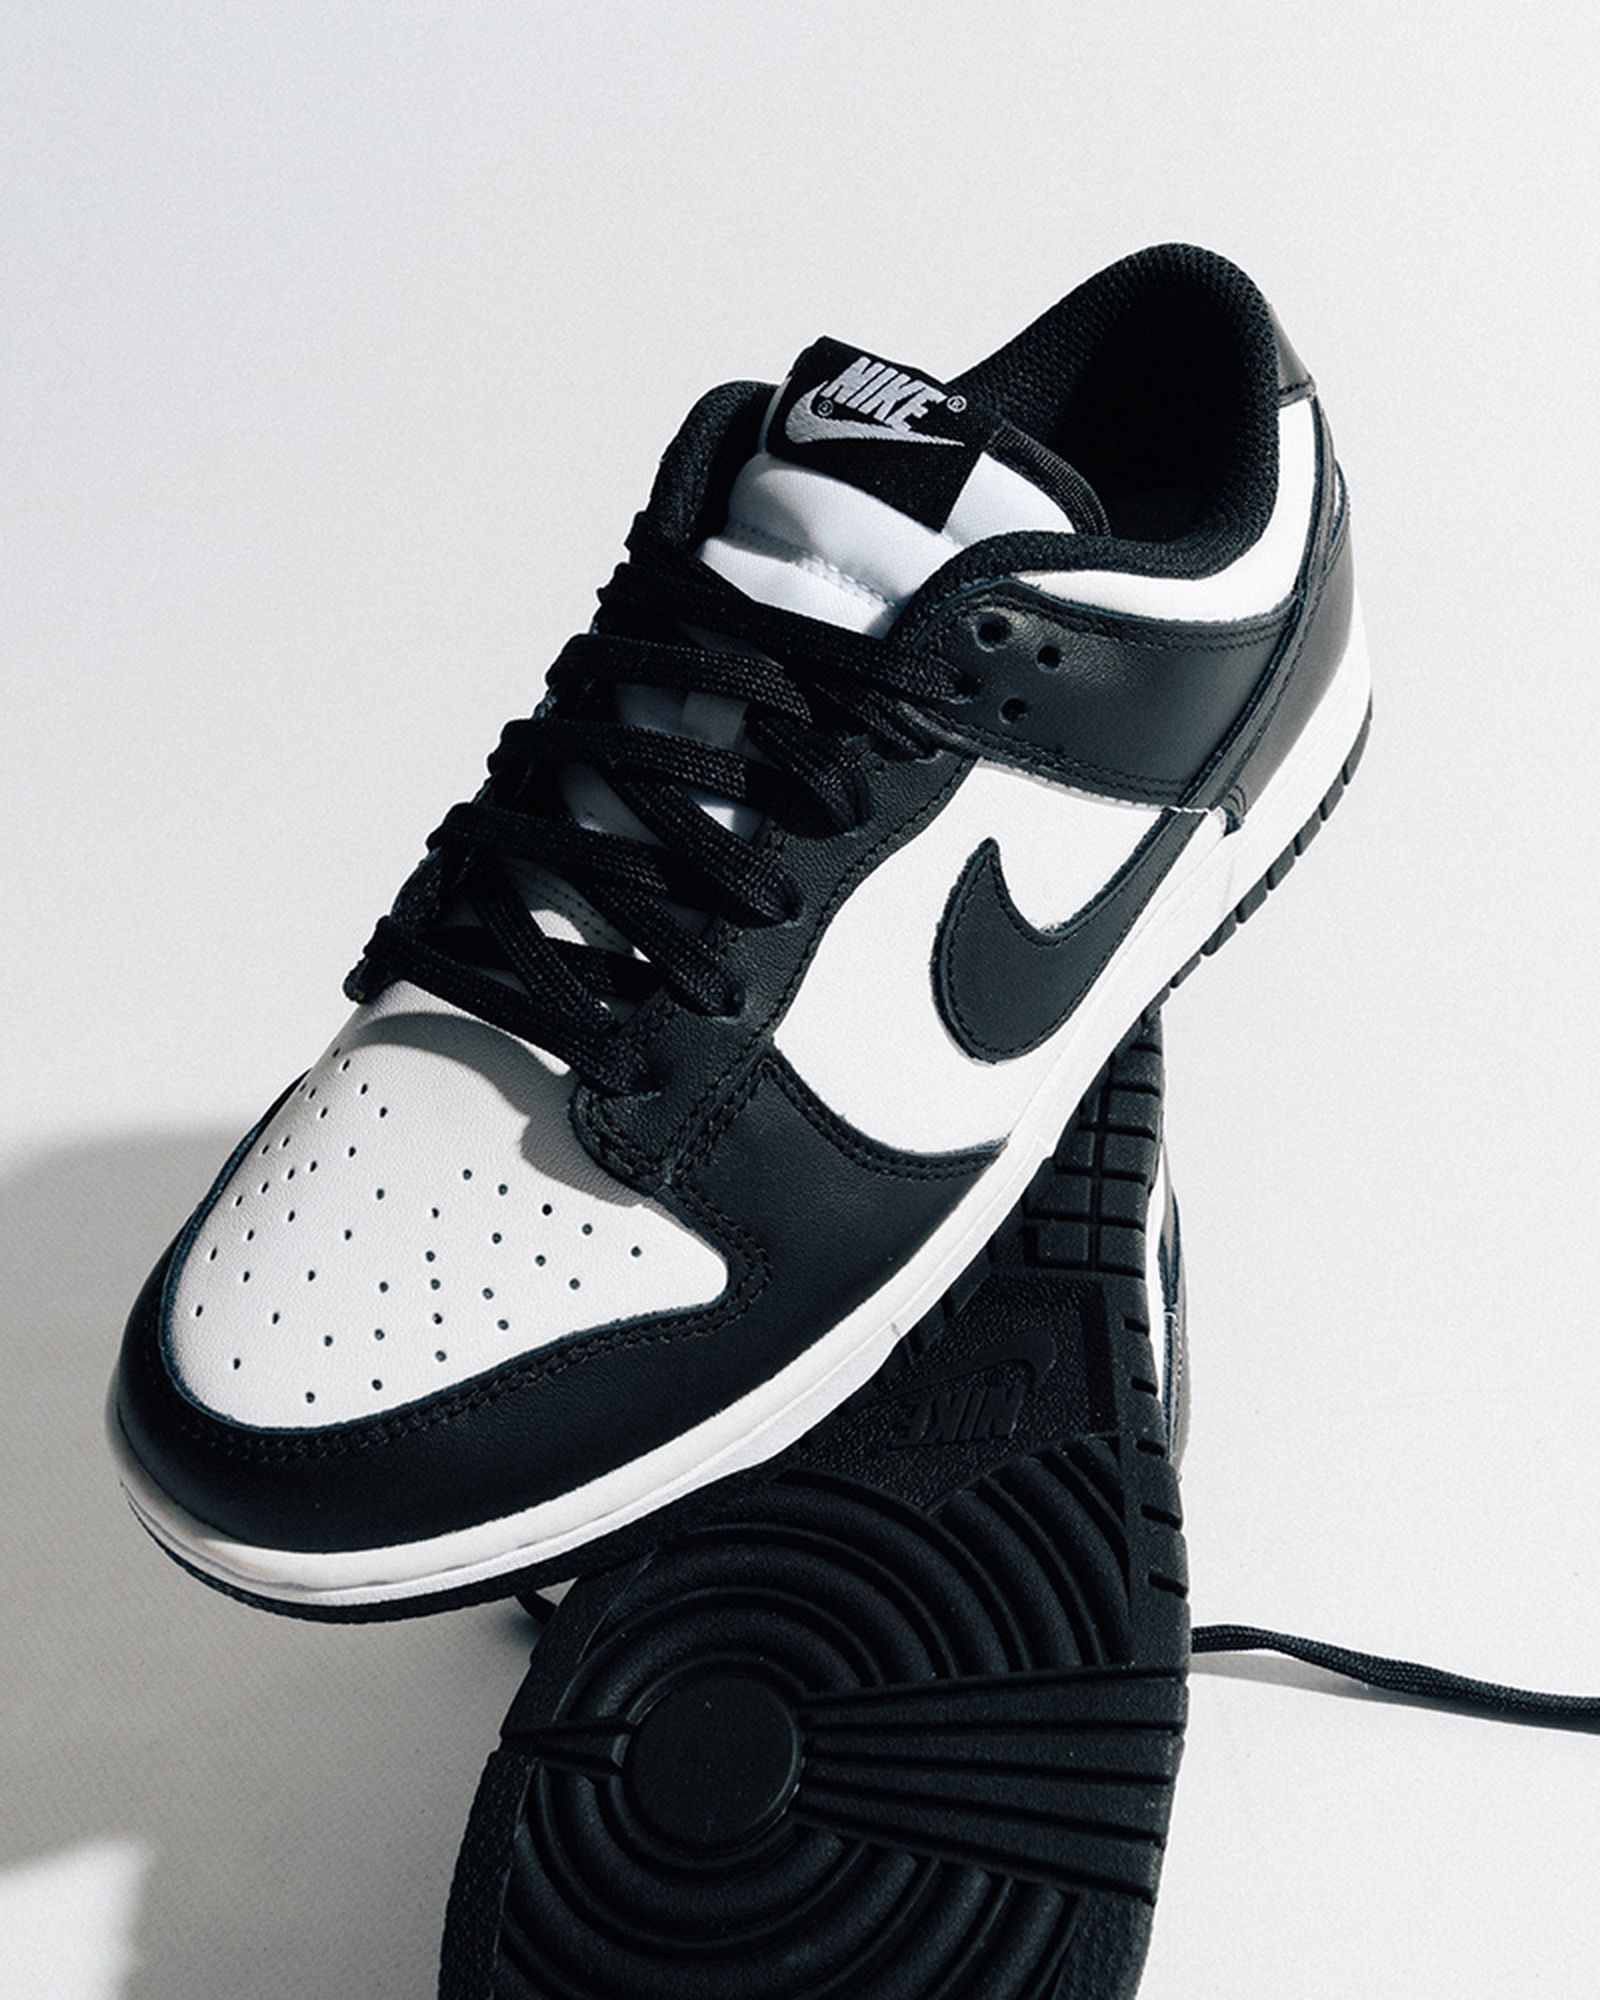 nike-dunk-low-black-white-release-date-price-03